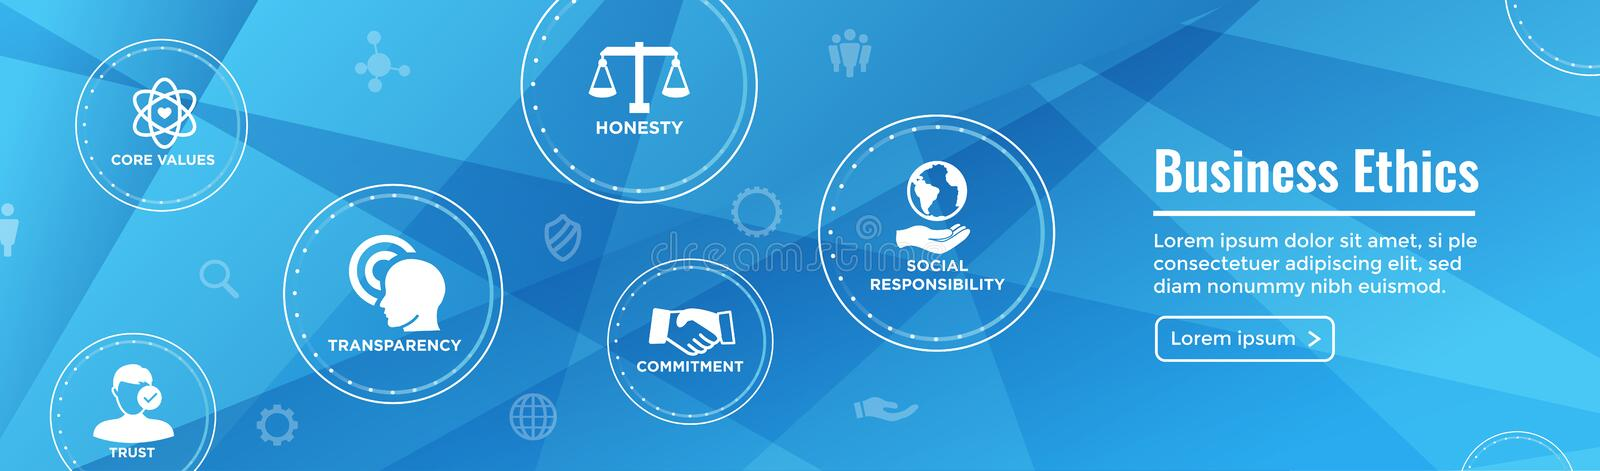 Business Ethics Web Banner Icon Set with Honesty, Integrity, Com vector illustration